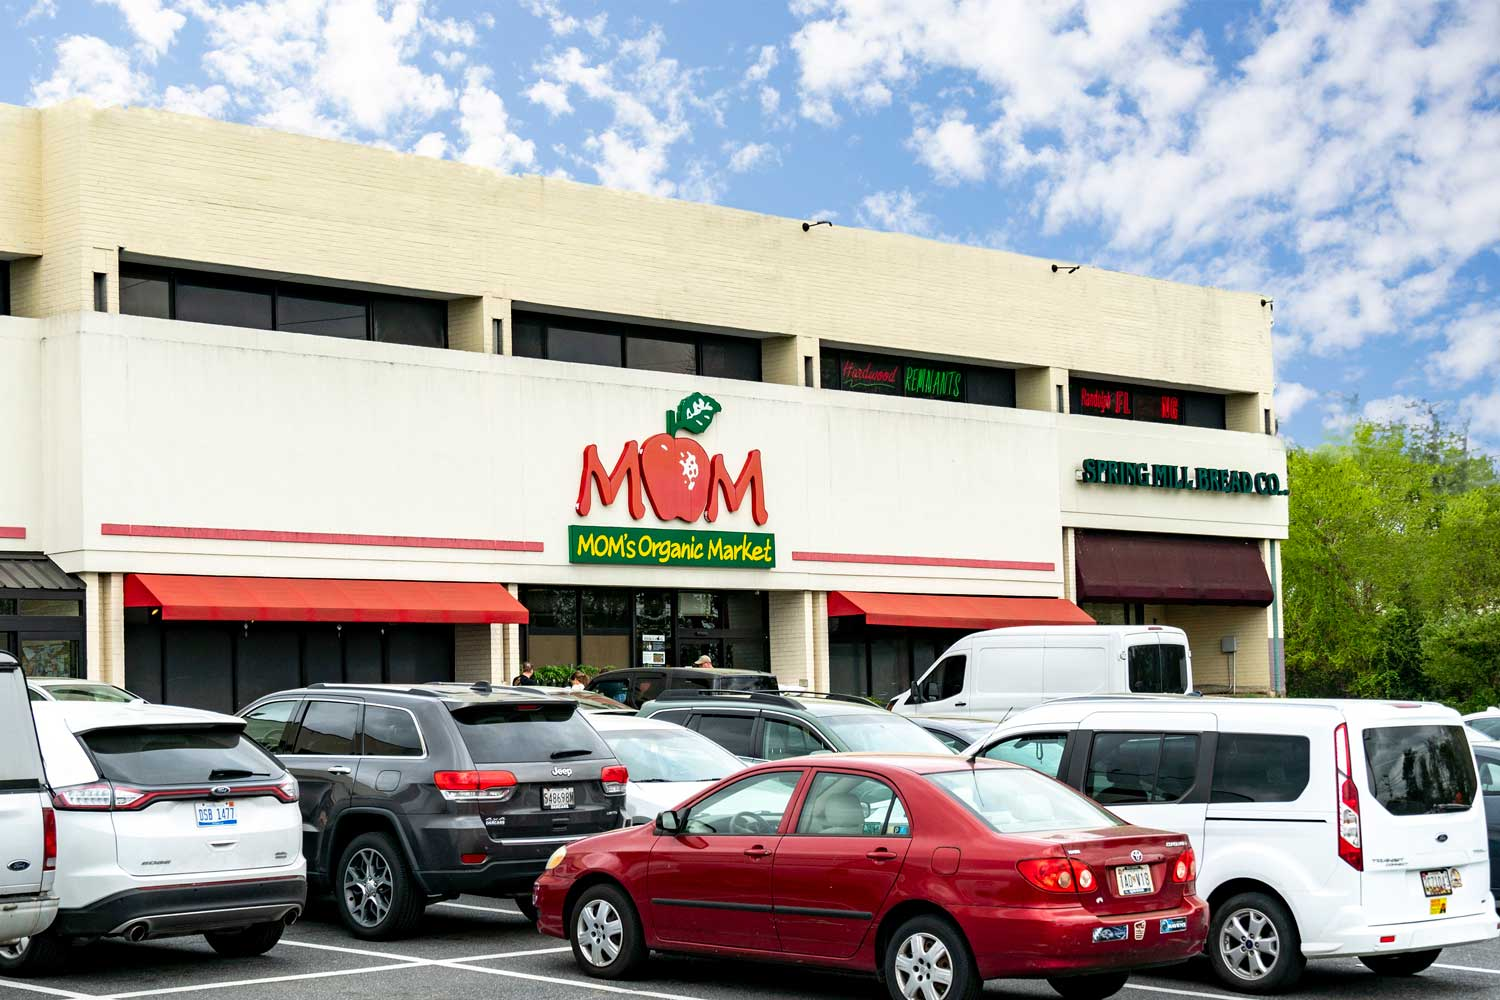 Mom's Organic Market is 5 minutes from Village Square West Apartments